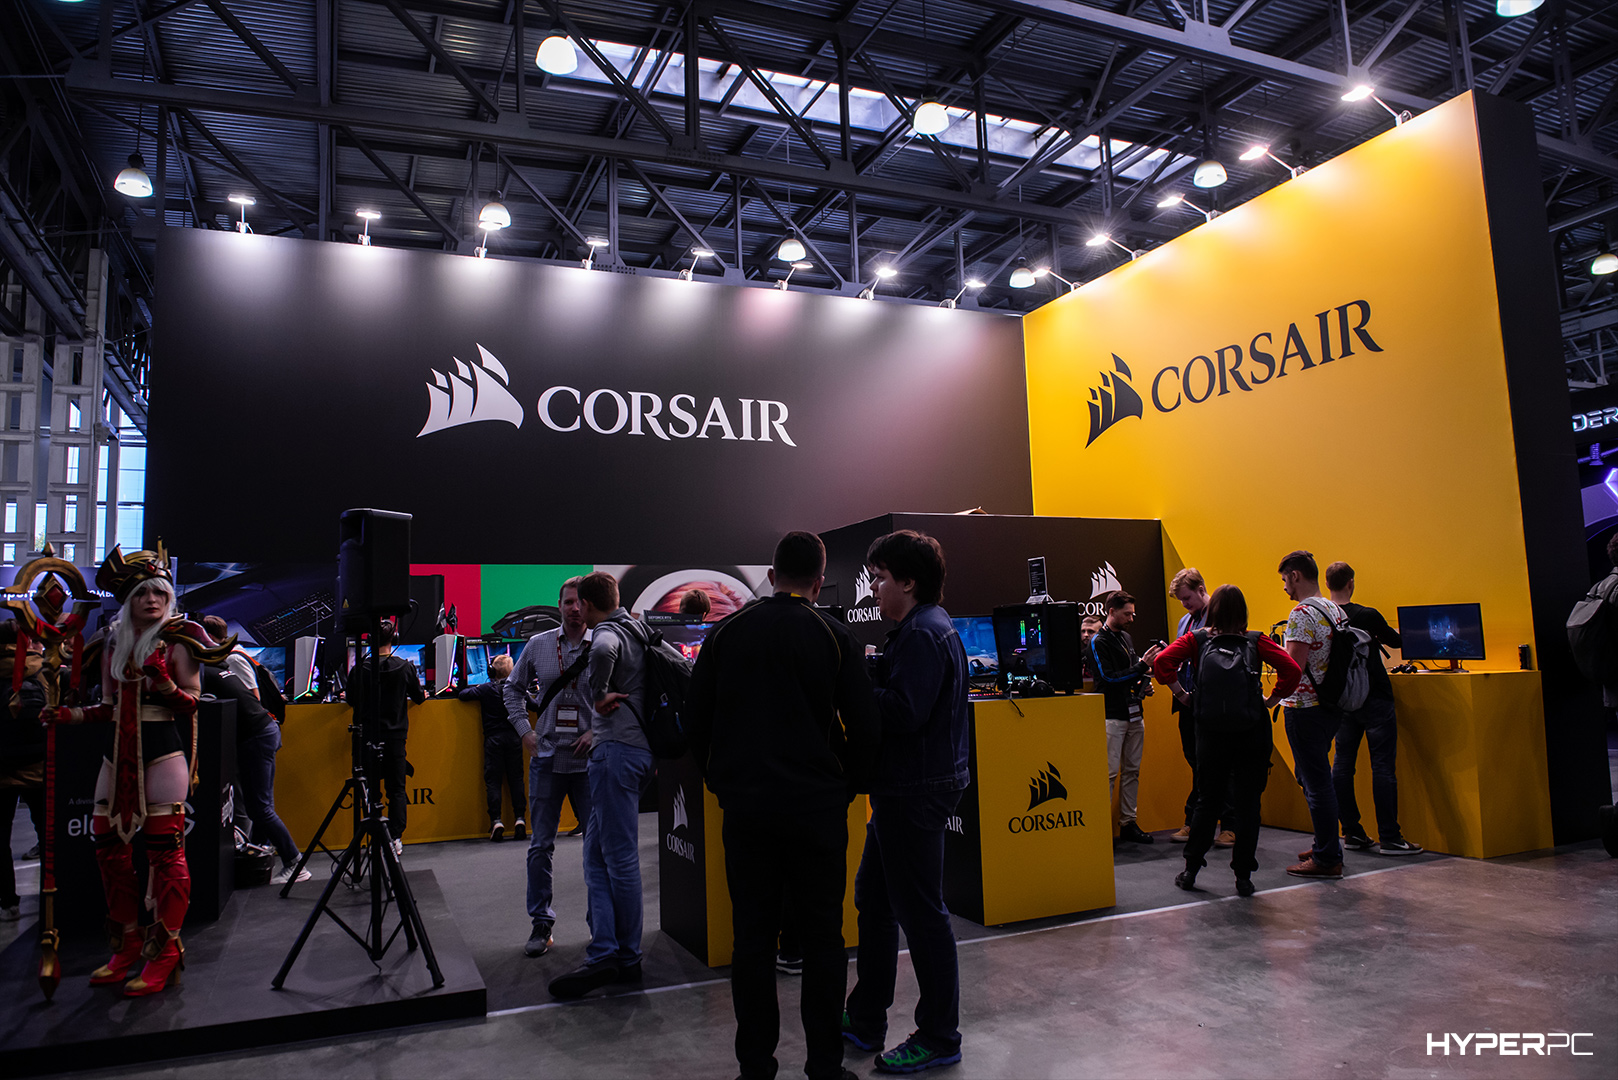 igromir-corsair-stand-live-photo-05